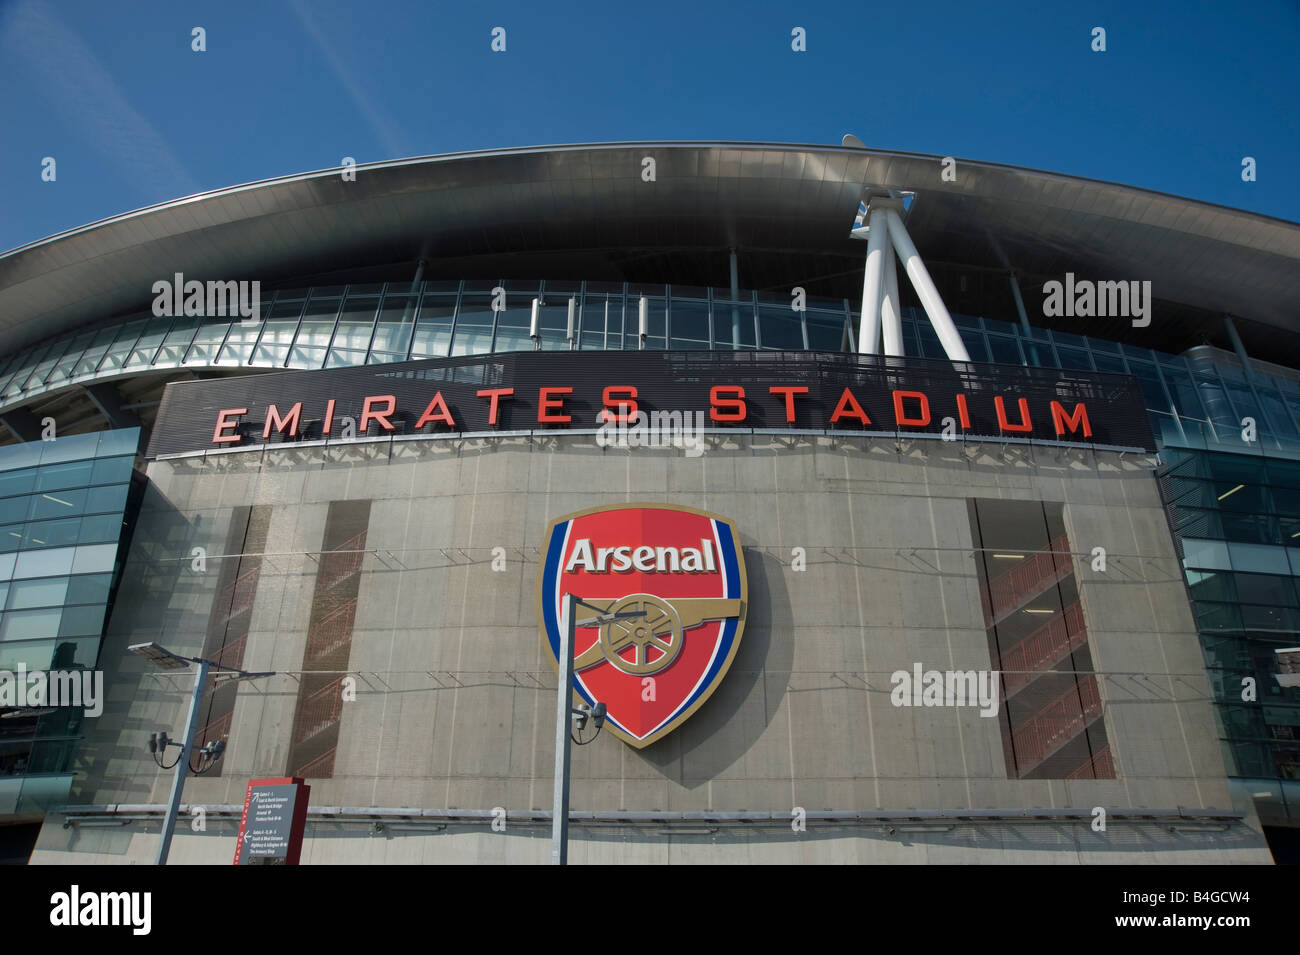 A view outside of the Arsenal Emirates stadium clearly showing the Emblem and Arsenal logo against a clear blue - Stock Image